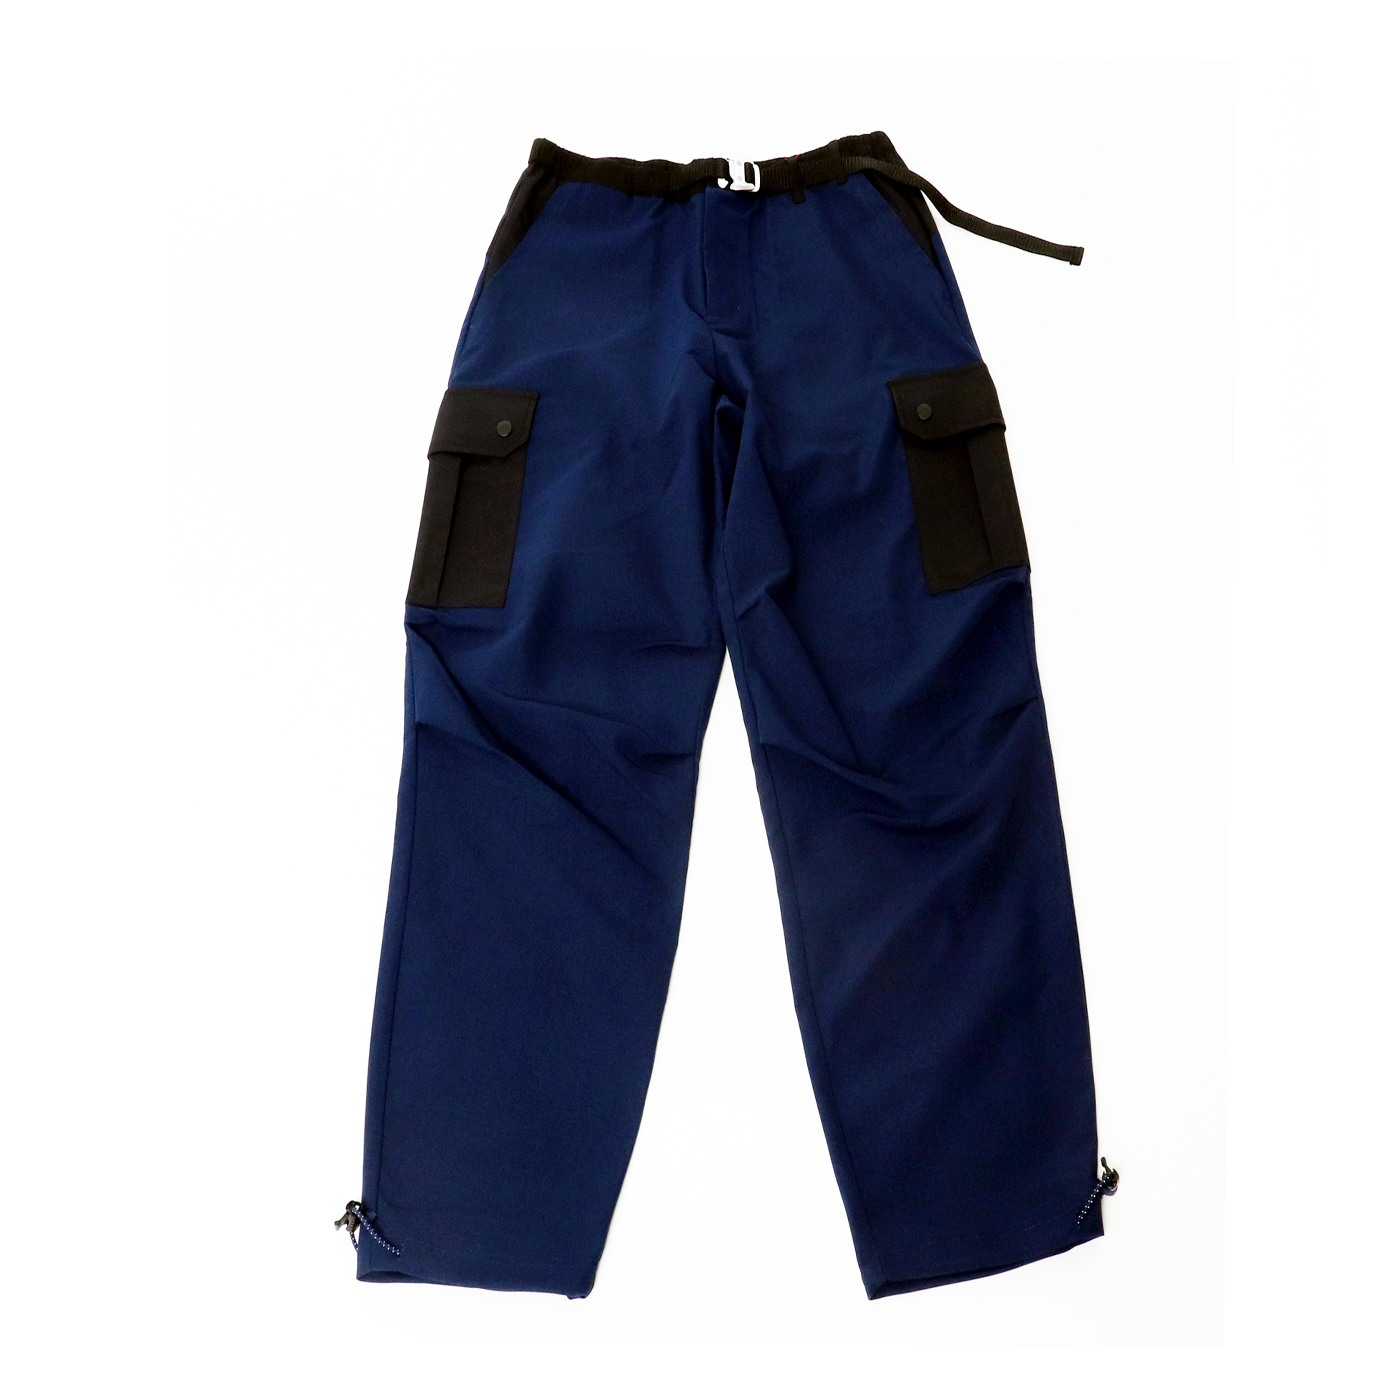 product: Lakewood / color: NAVY 1